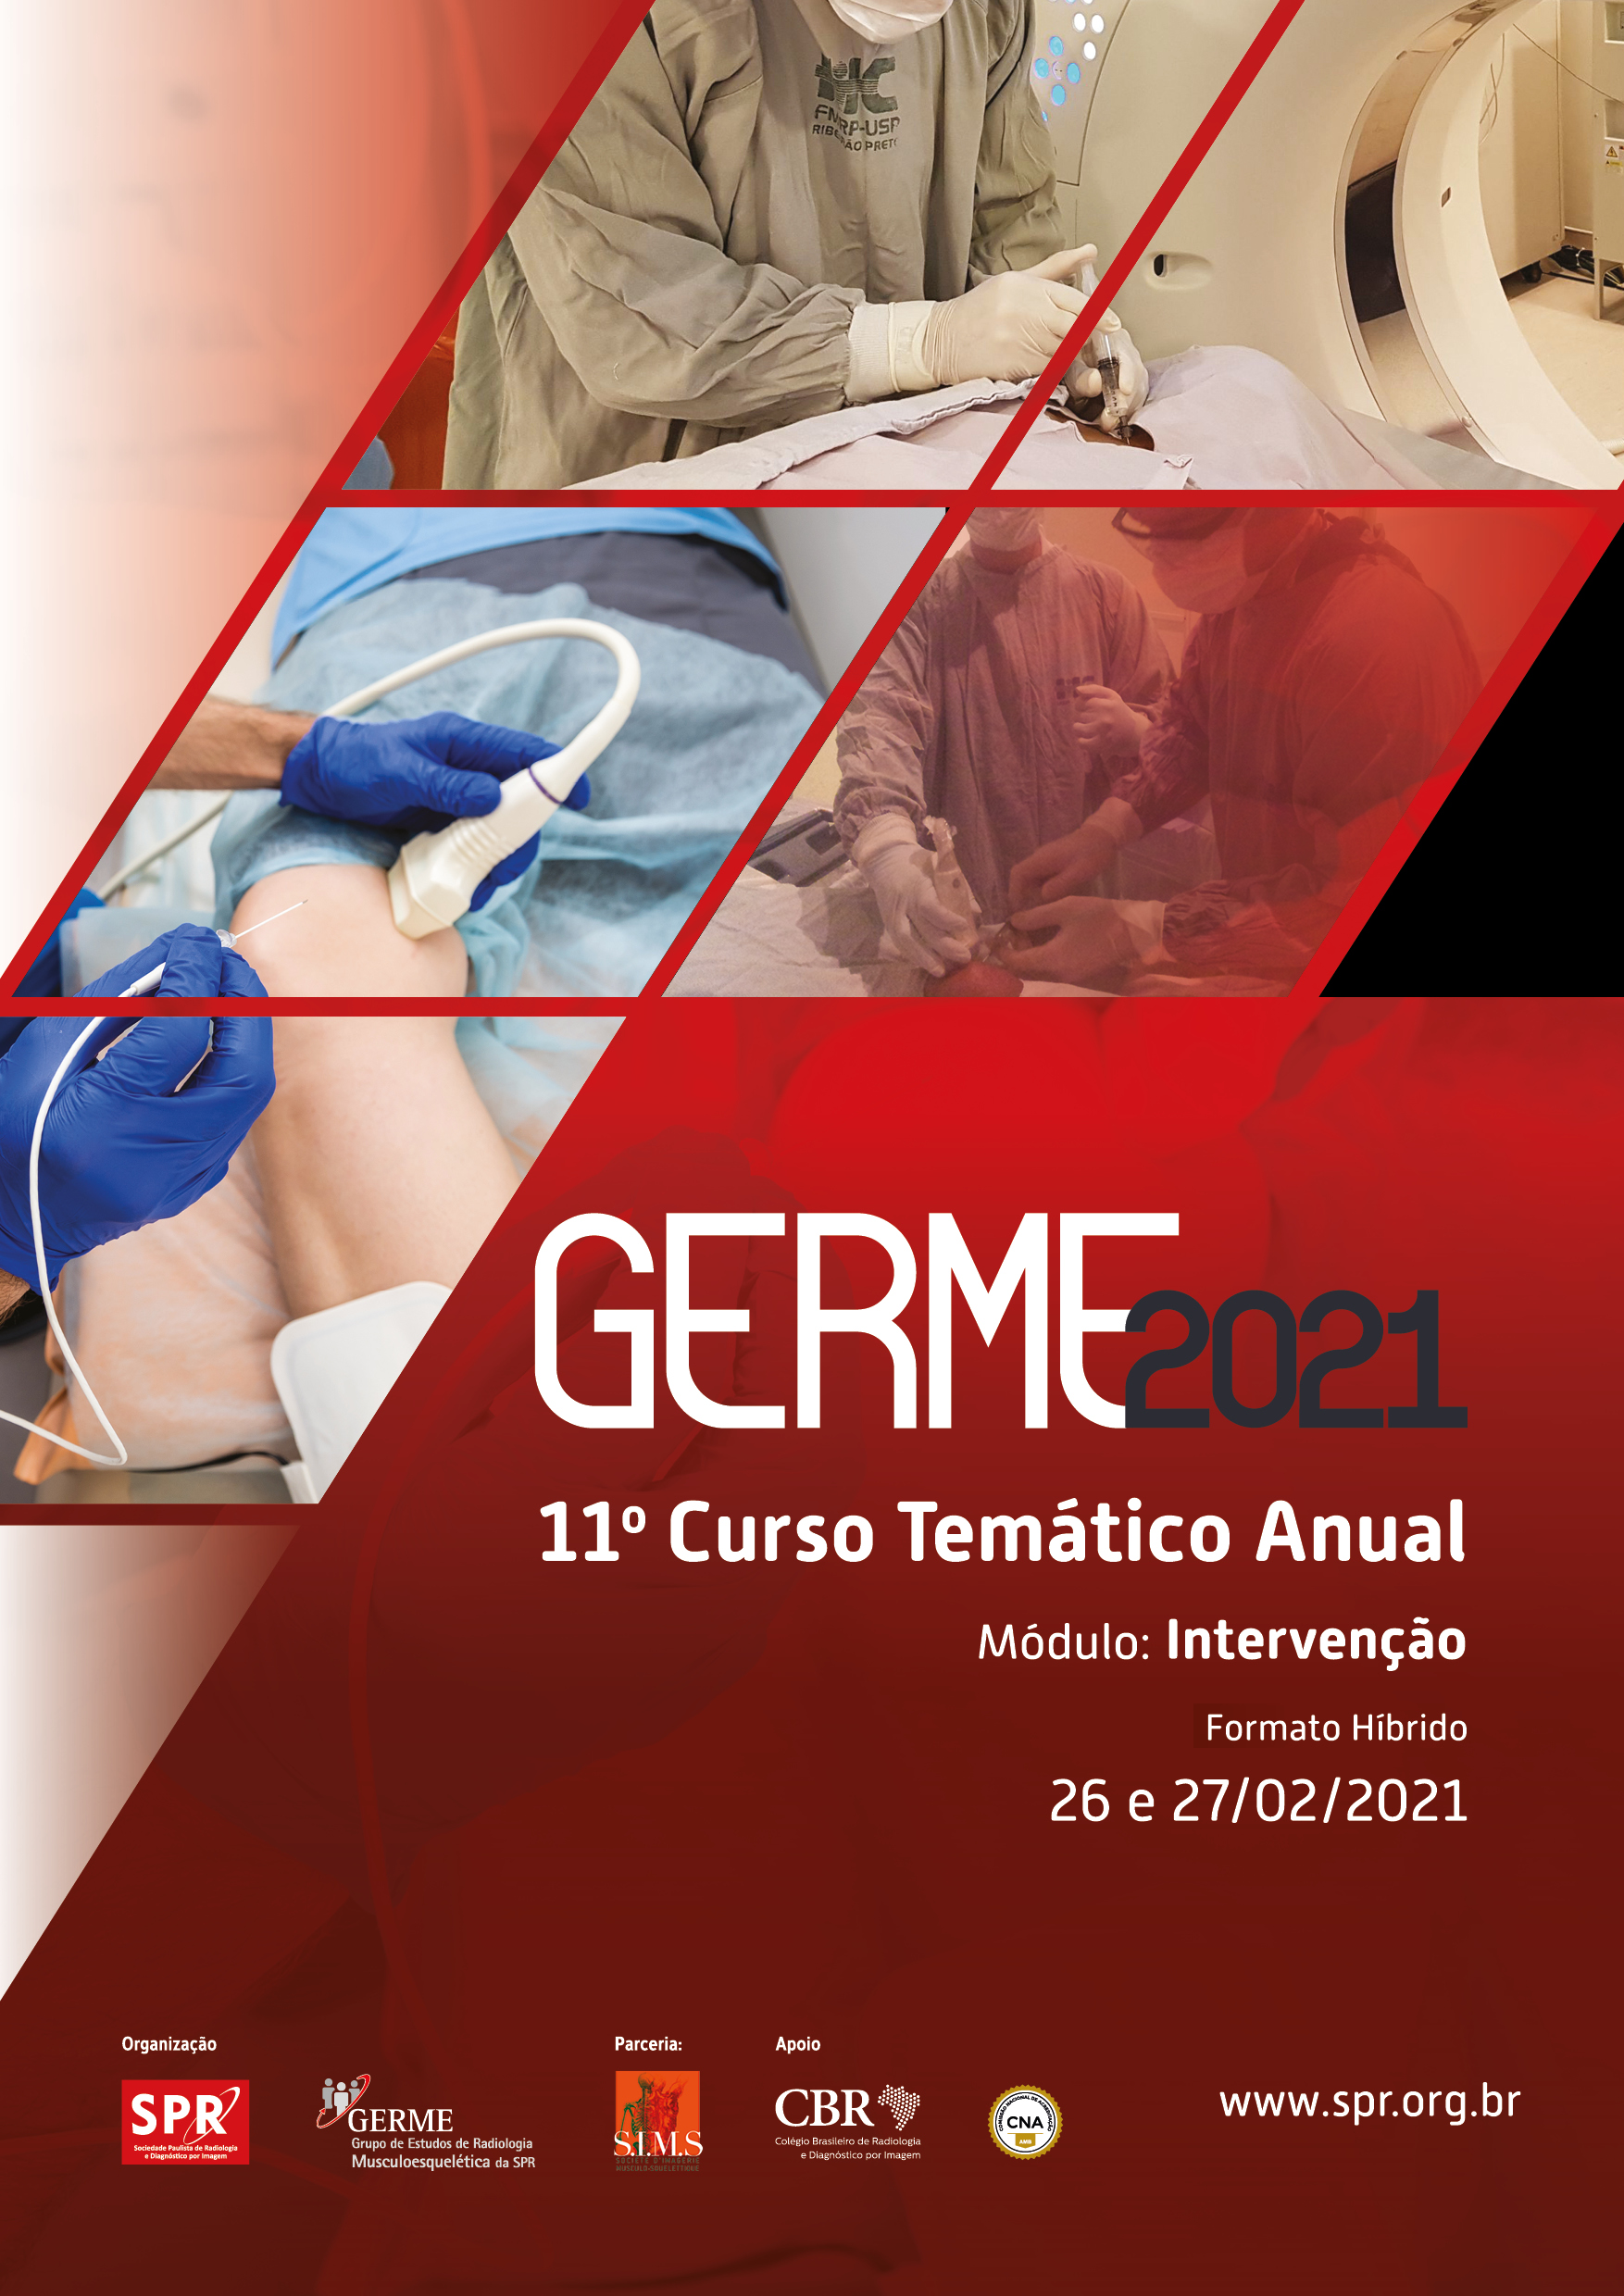 Inscreva-se no GERME 2021!